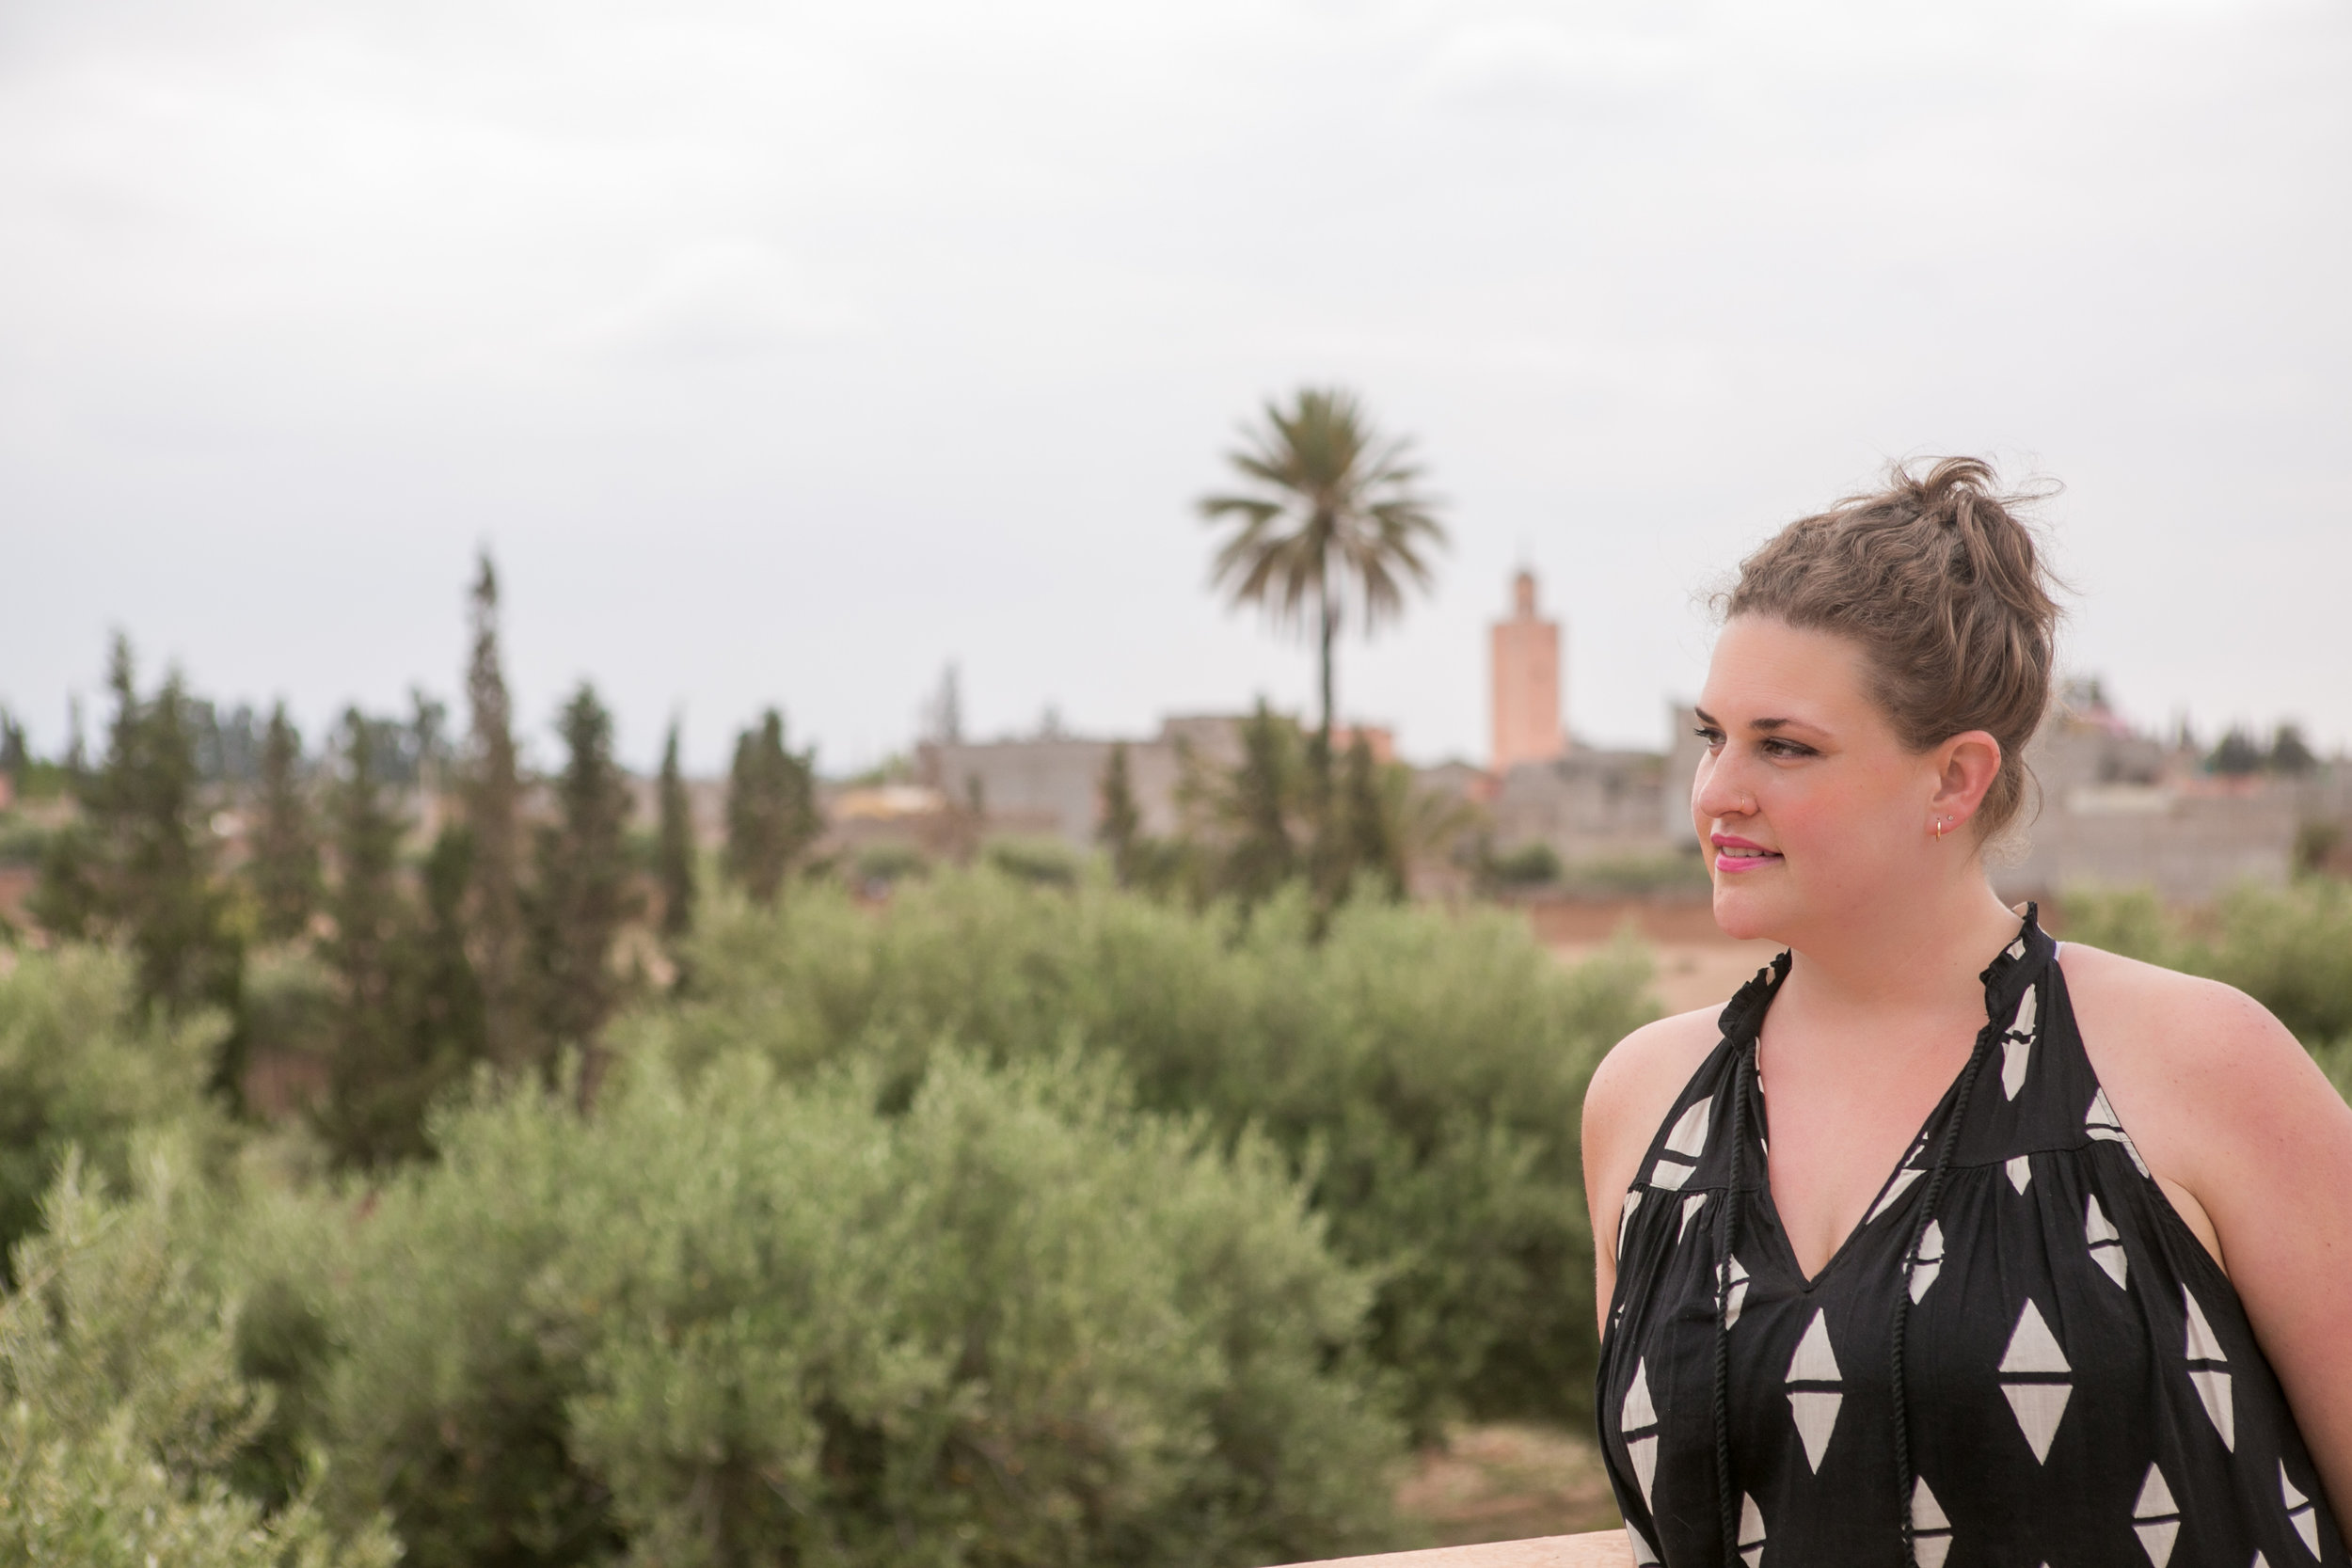 On a Moroccan rooftop in May 2016. Naturally. © 2016 Gail Jessen, A Series of Adventures